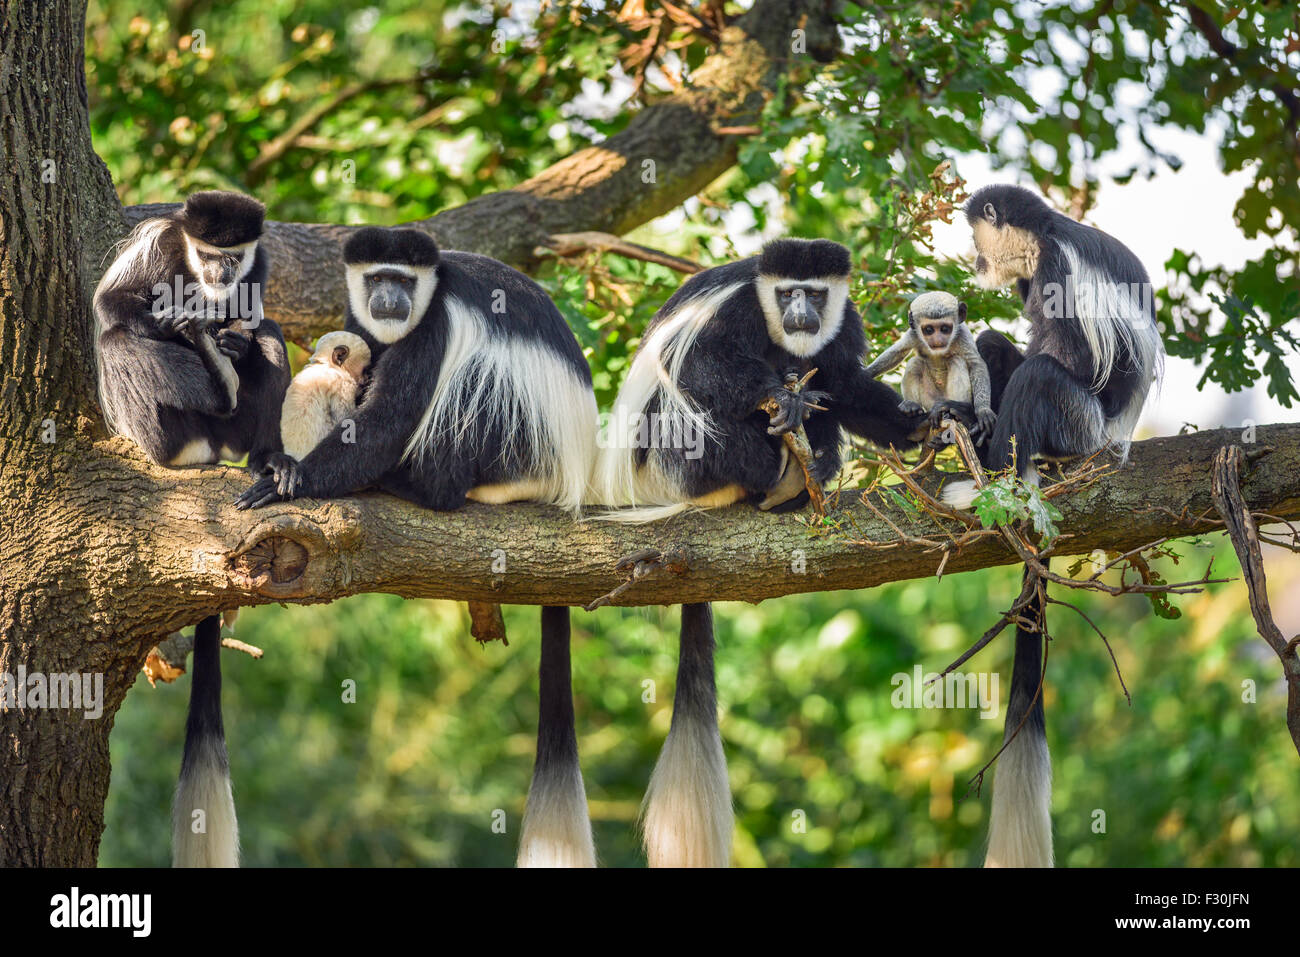 A troop of Mantled guereza monkeys (Colobus guereza) with two newborns - Stock Image